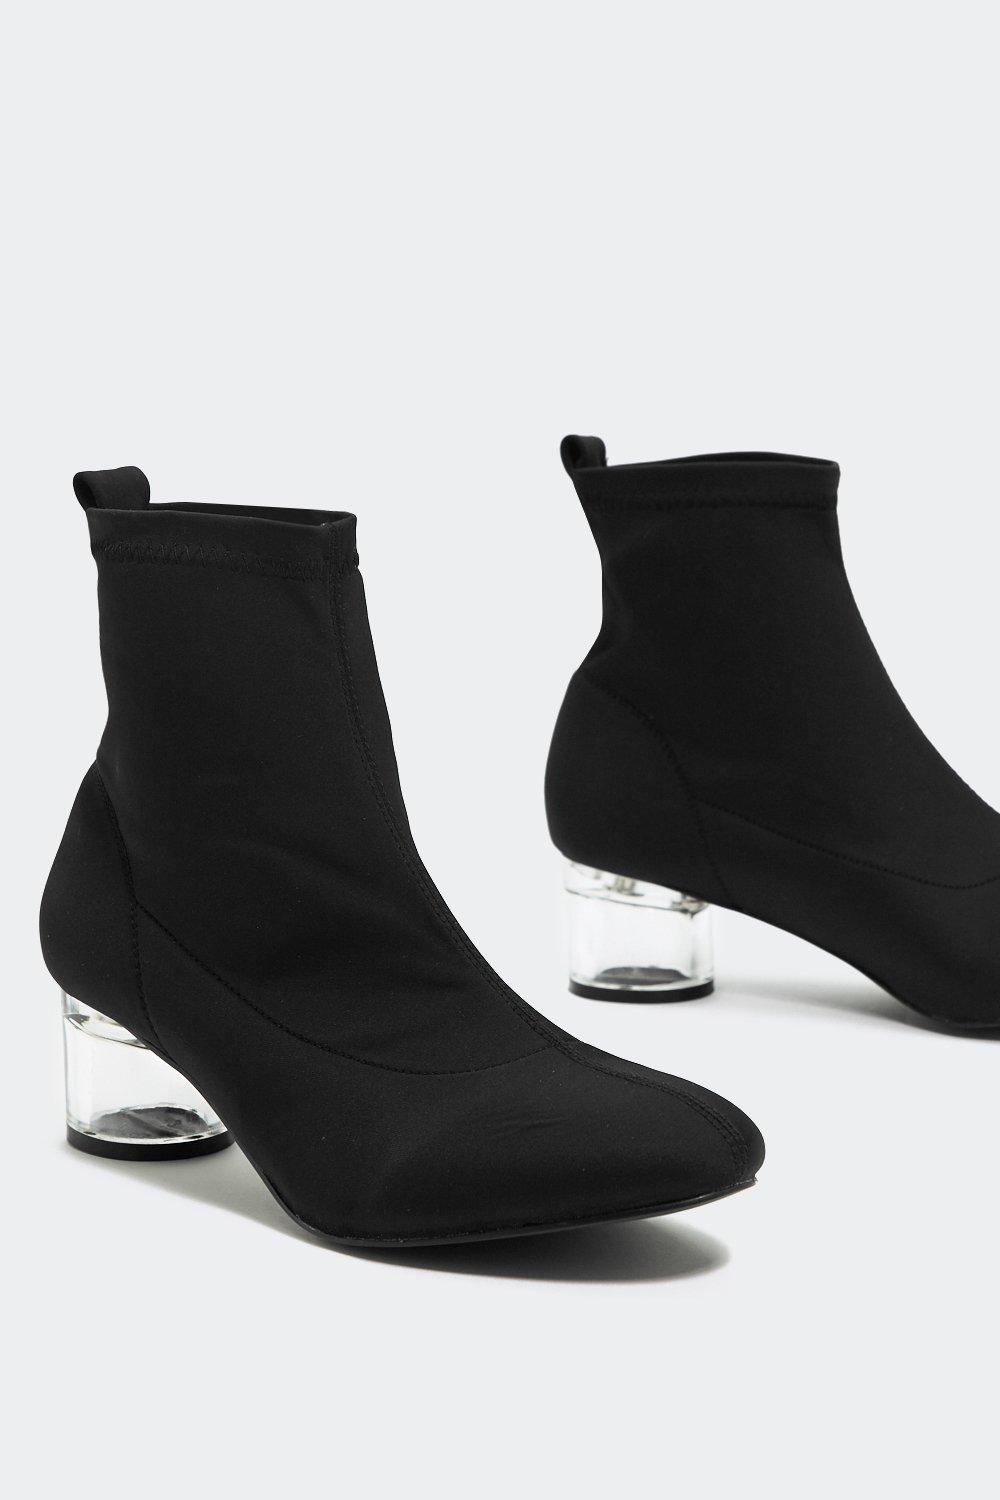 newest style 2020 new season Glass Half Full Sock Ankle Boot | Shop Clothes at Nasty Gal!